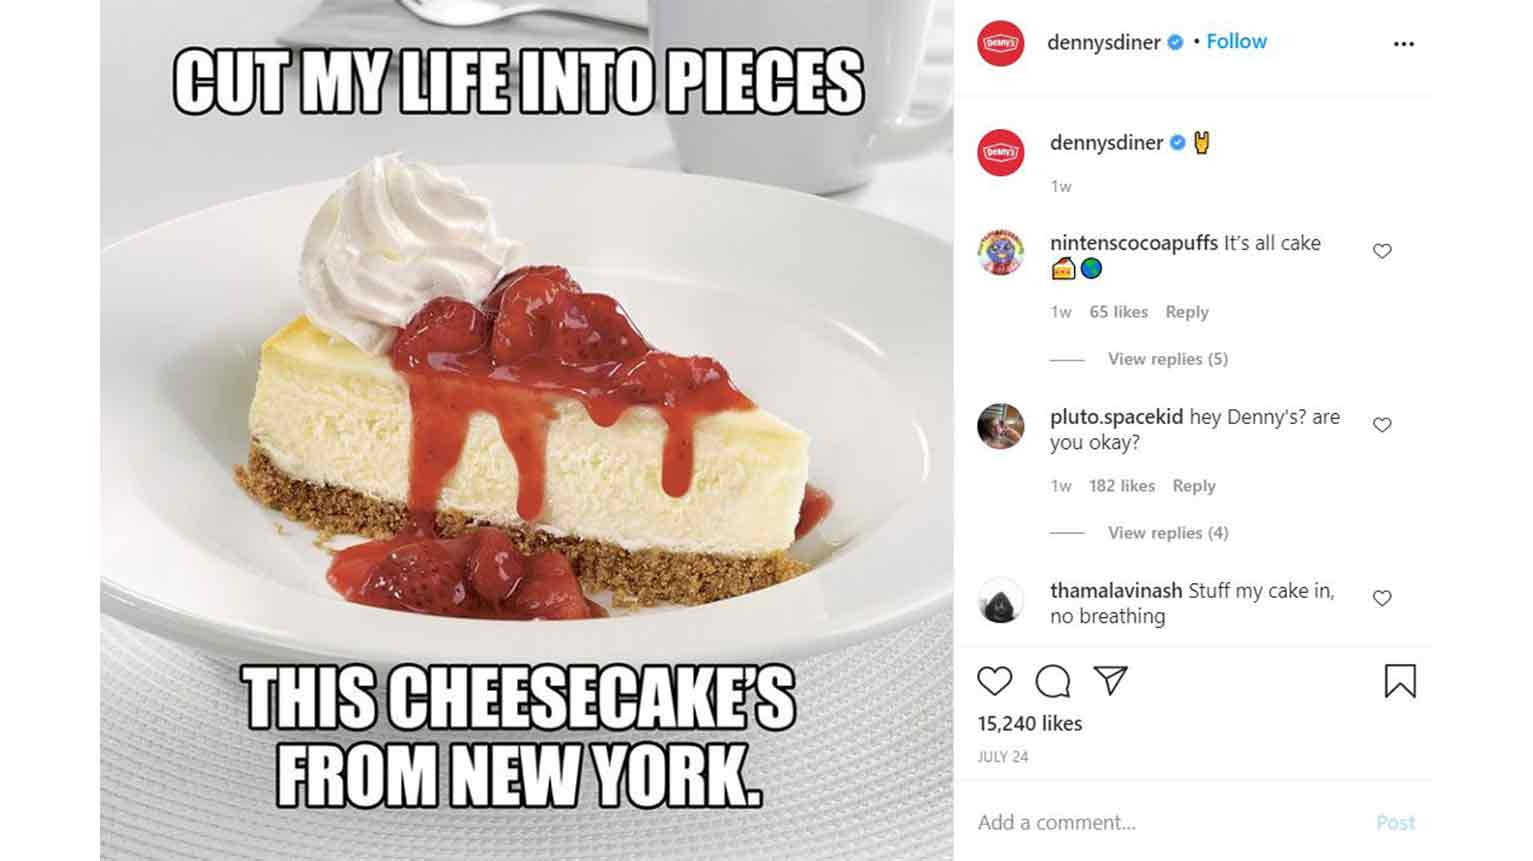 This post from Denny's might put a smile on your face, whether it's an organic or a paid ad.